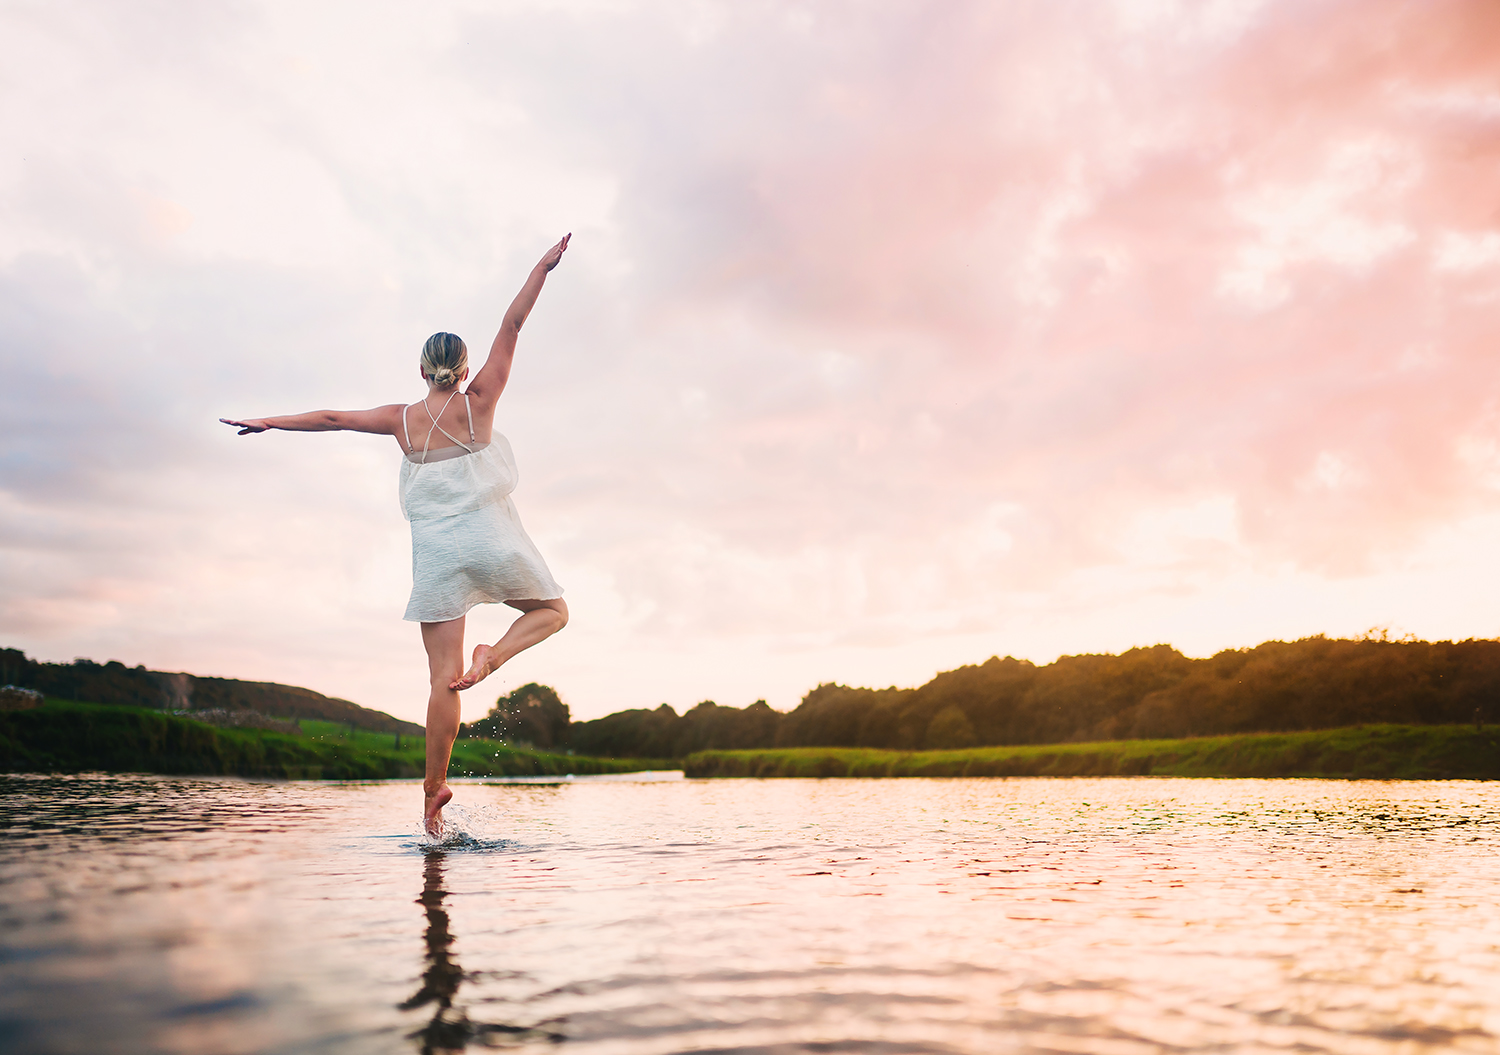 ballet dancer at sunset in a river